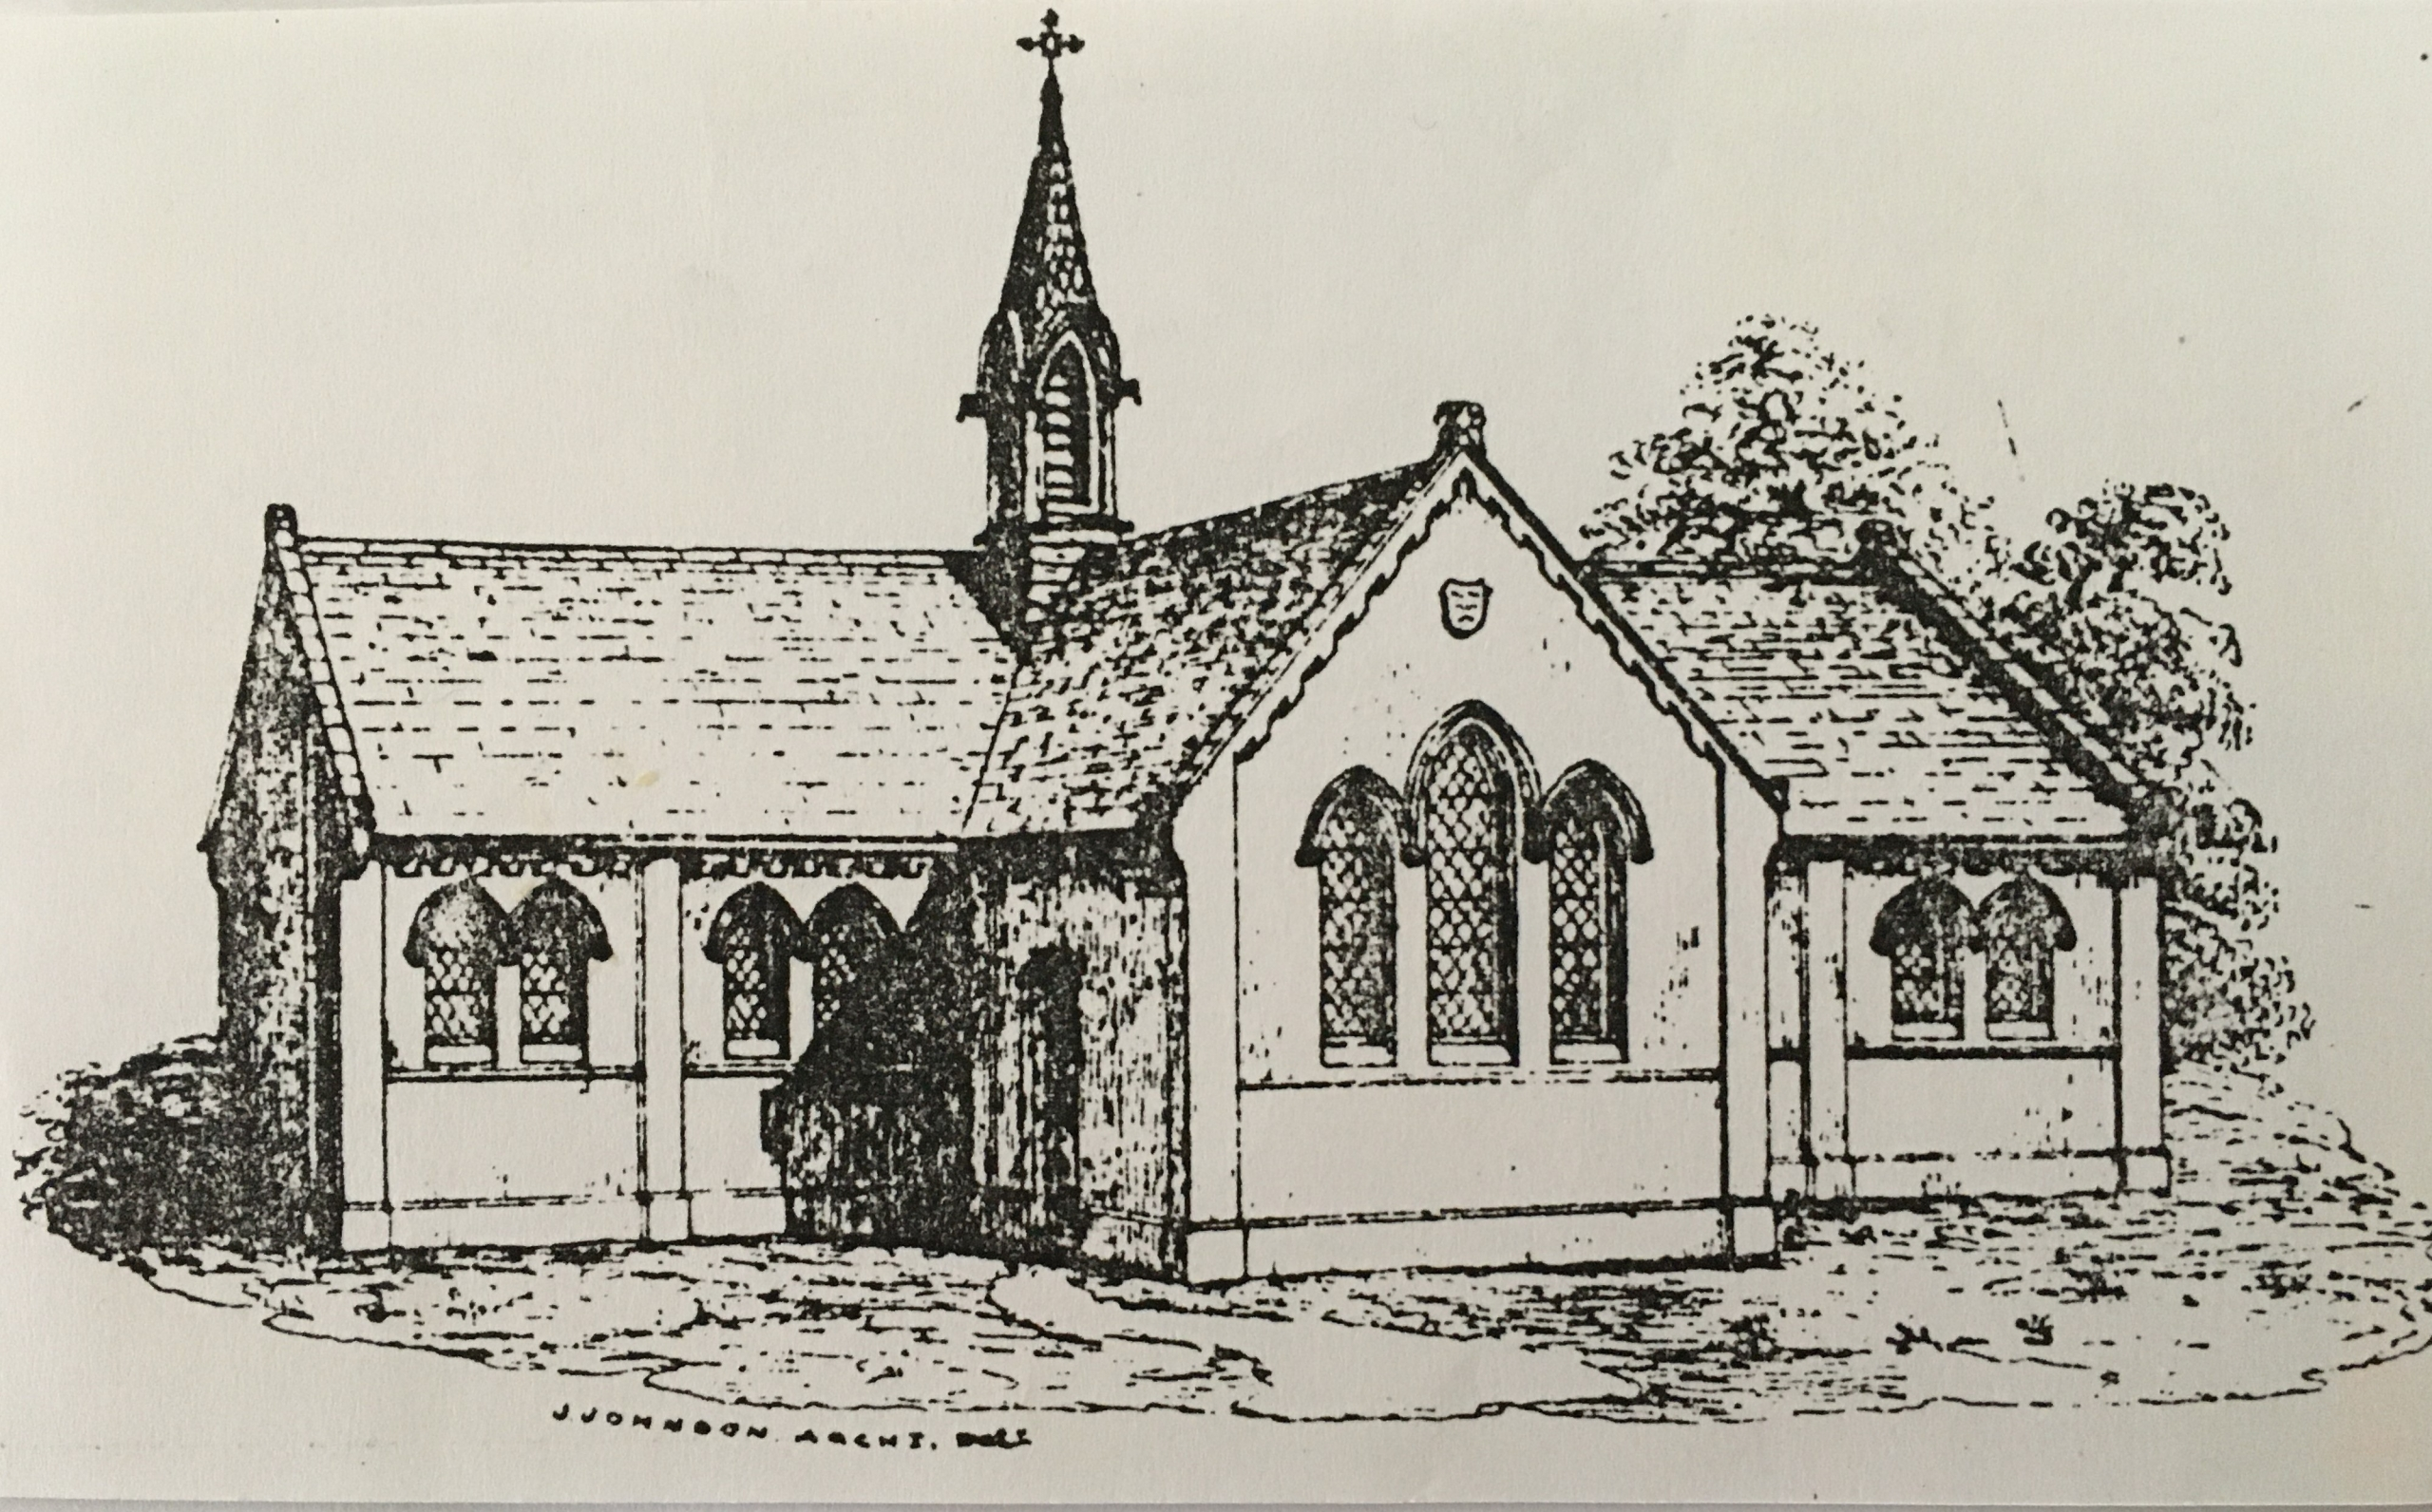 Architect John Johnson's drawing of 1852 for the National School erected in 1853.